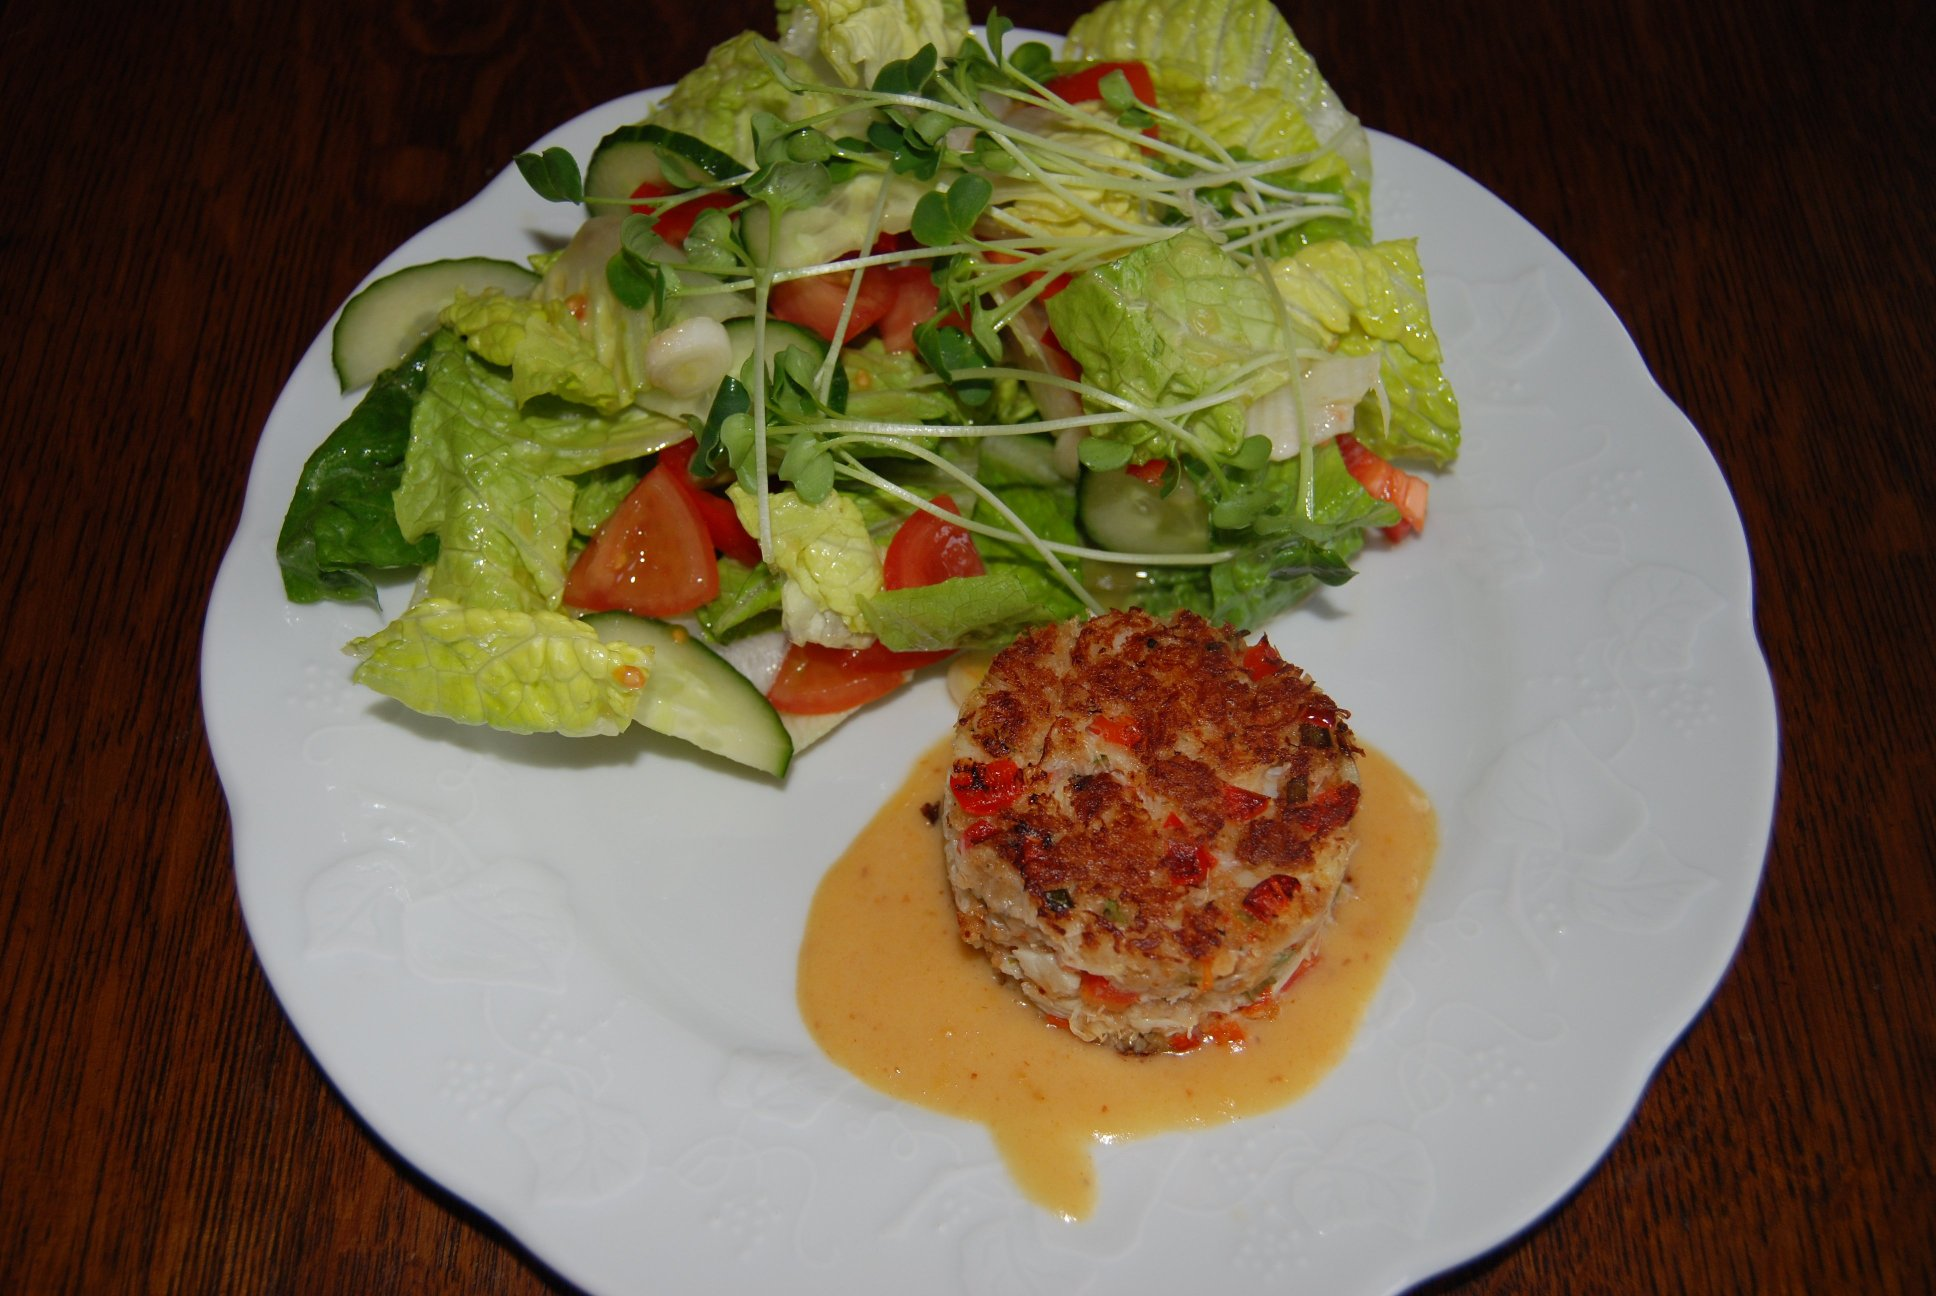 Awesome Crab-cakes with Salad picture